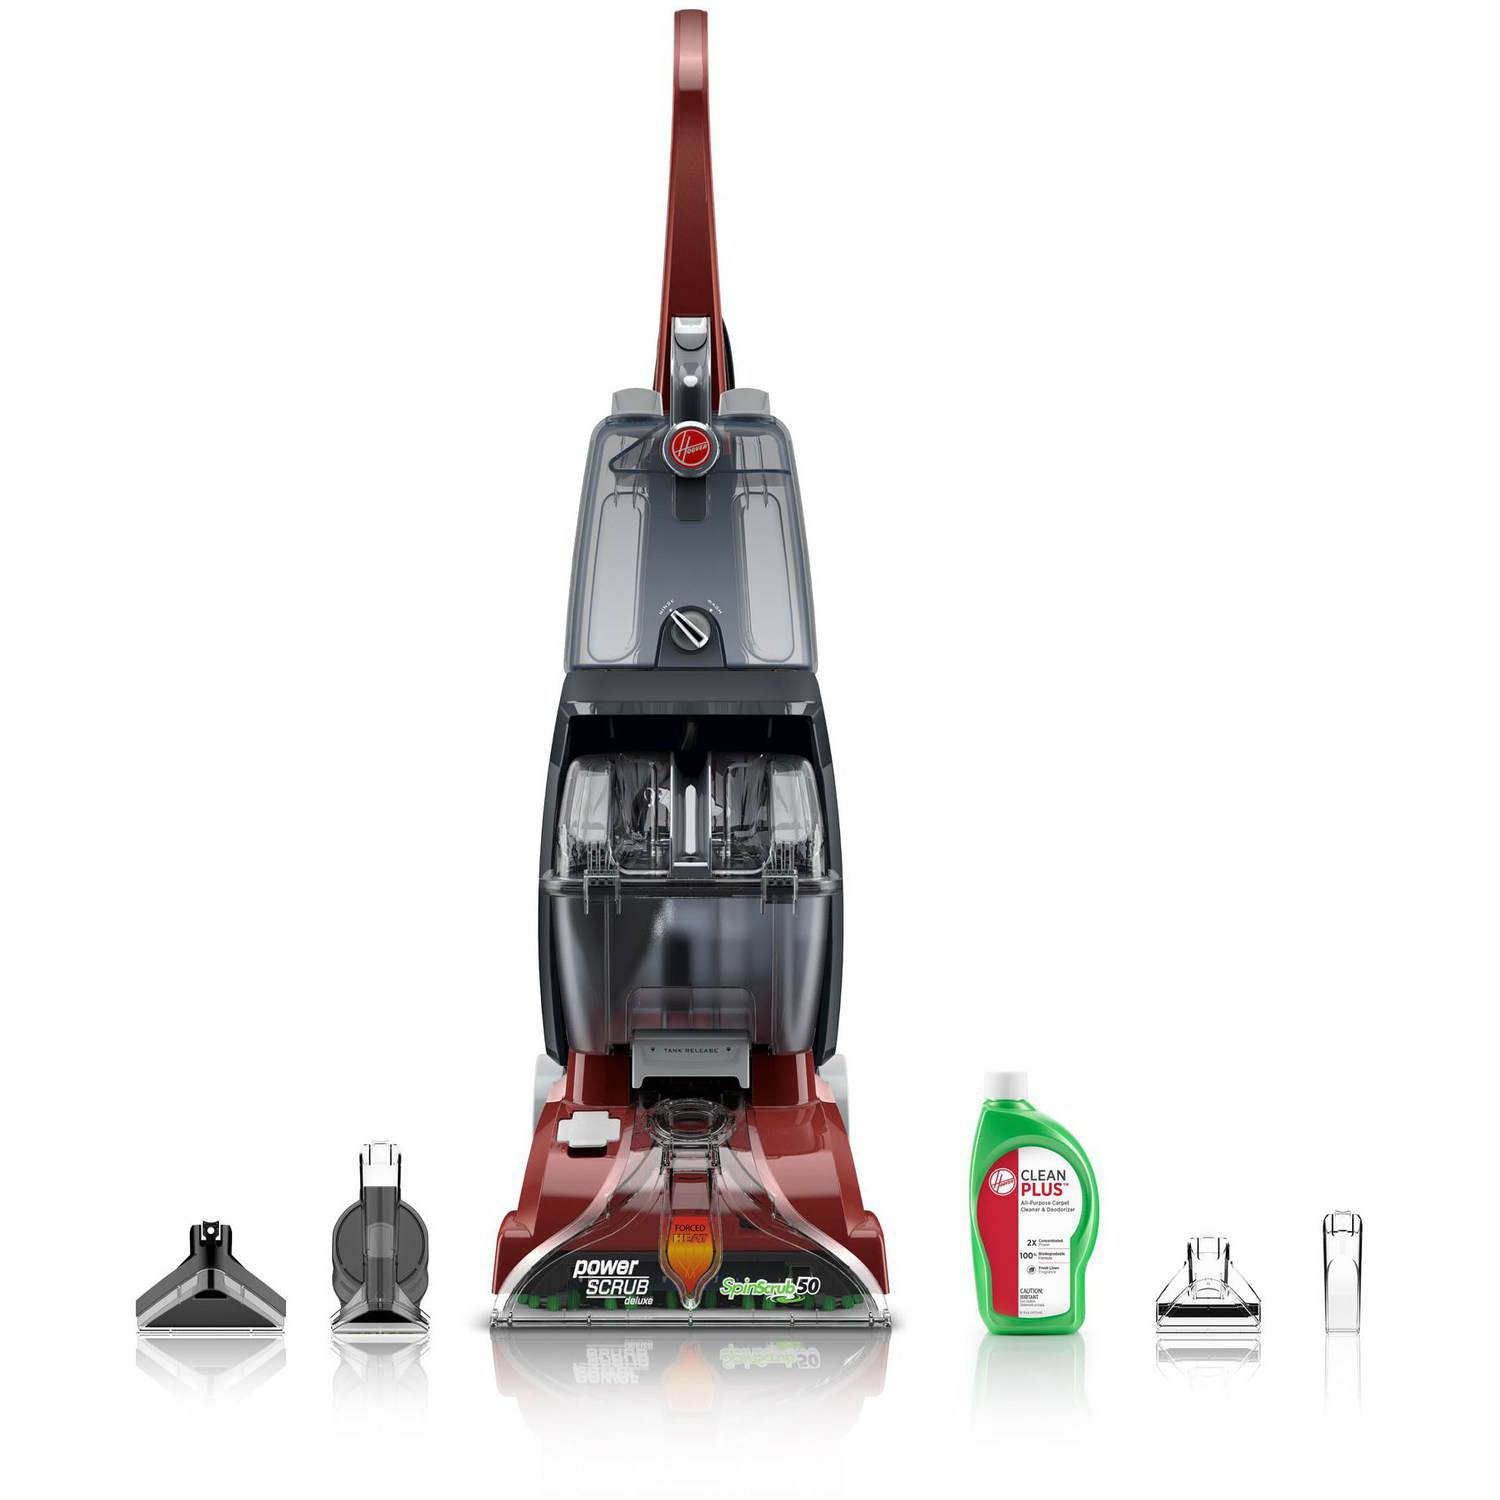 Hoover Power Scrub Deluxe Carpet Cleaner, -FH50150